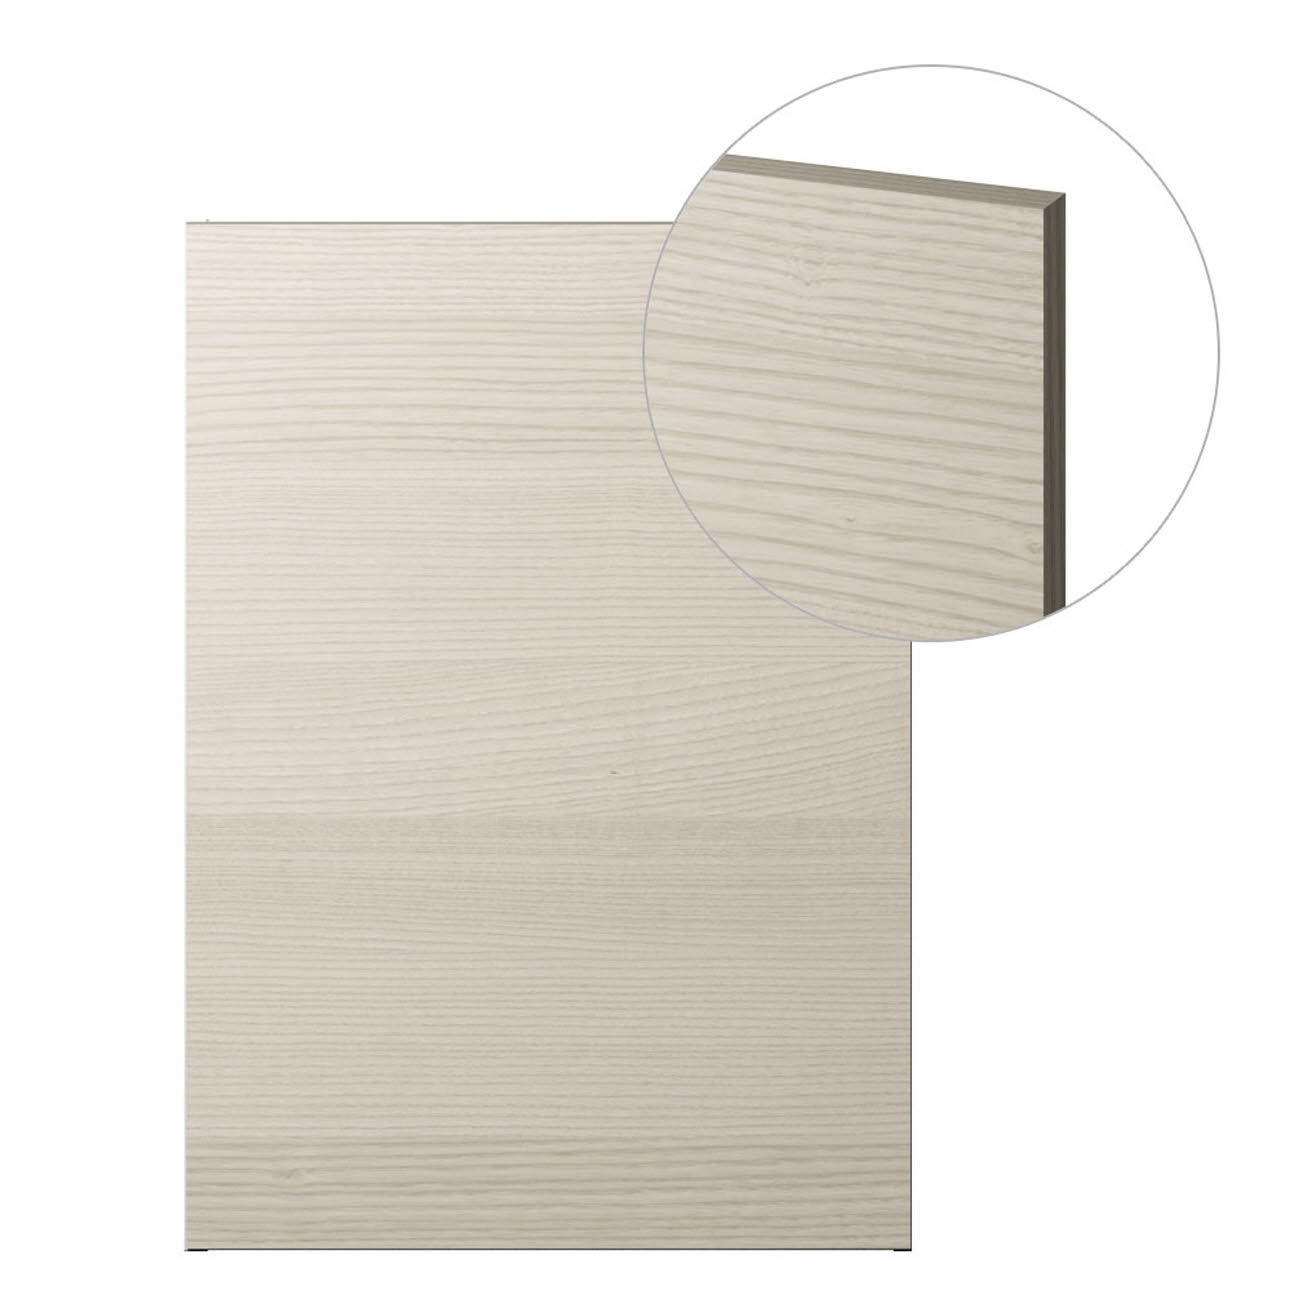 Athena Light Ash Veneer | HTH